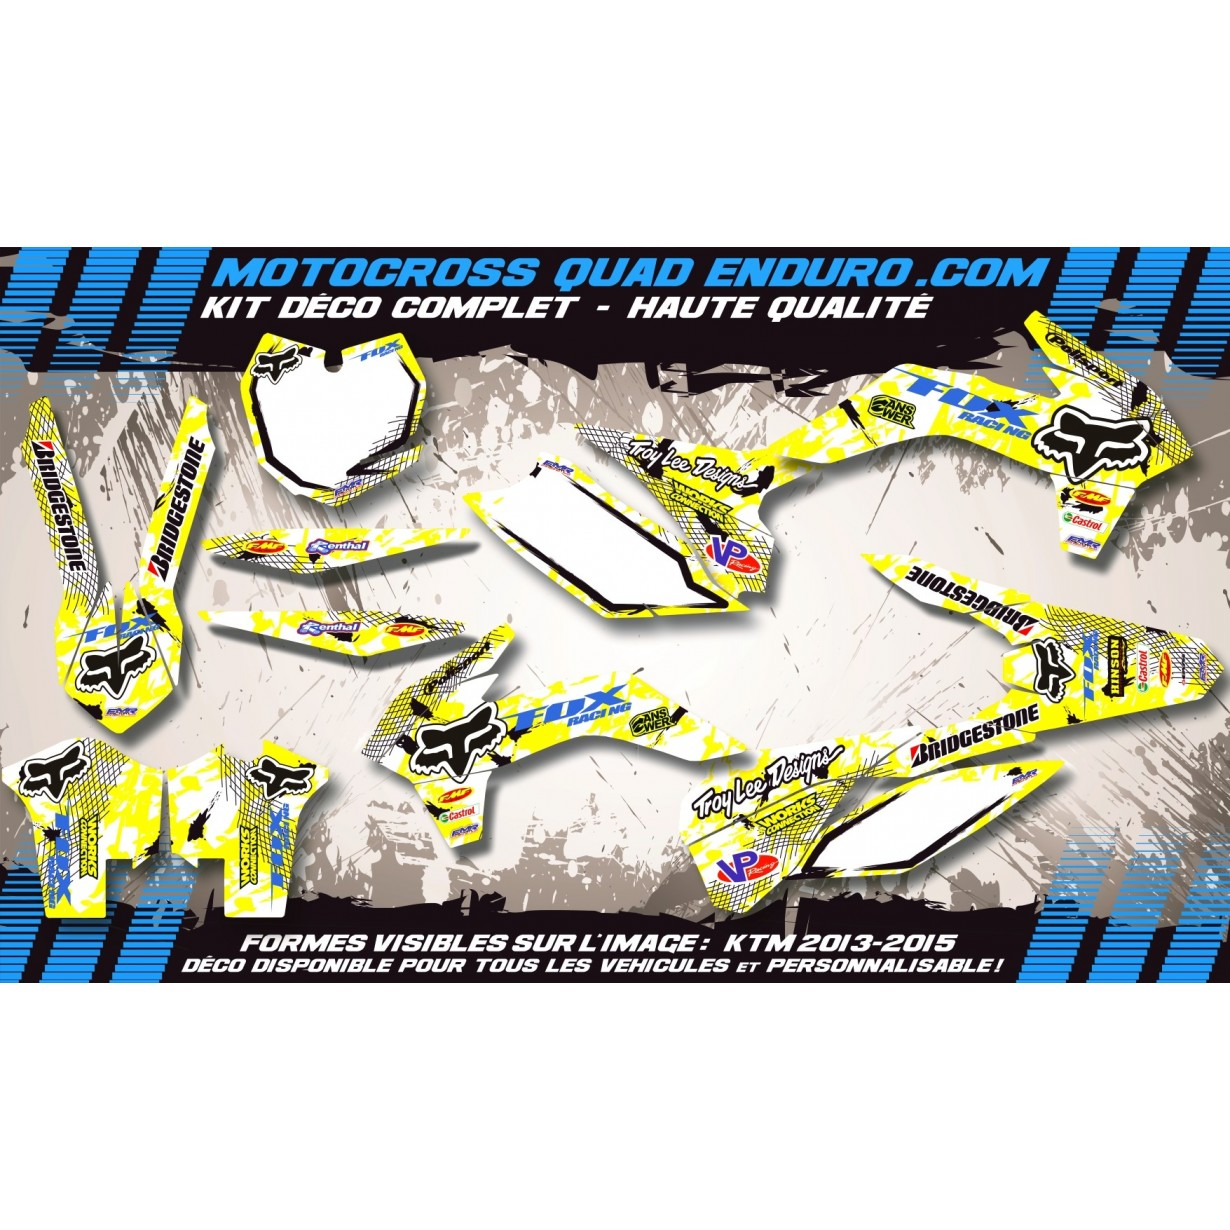 KIT DÉCO Perso 350 RAPTOR Quad FOX MA9D